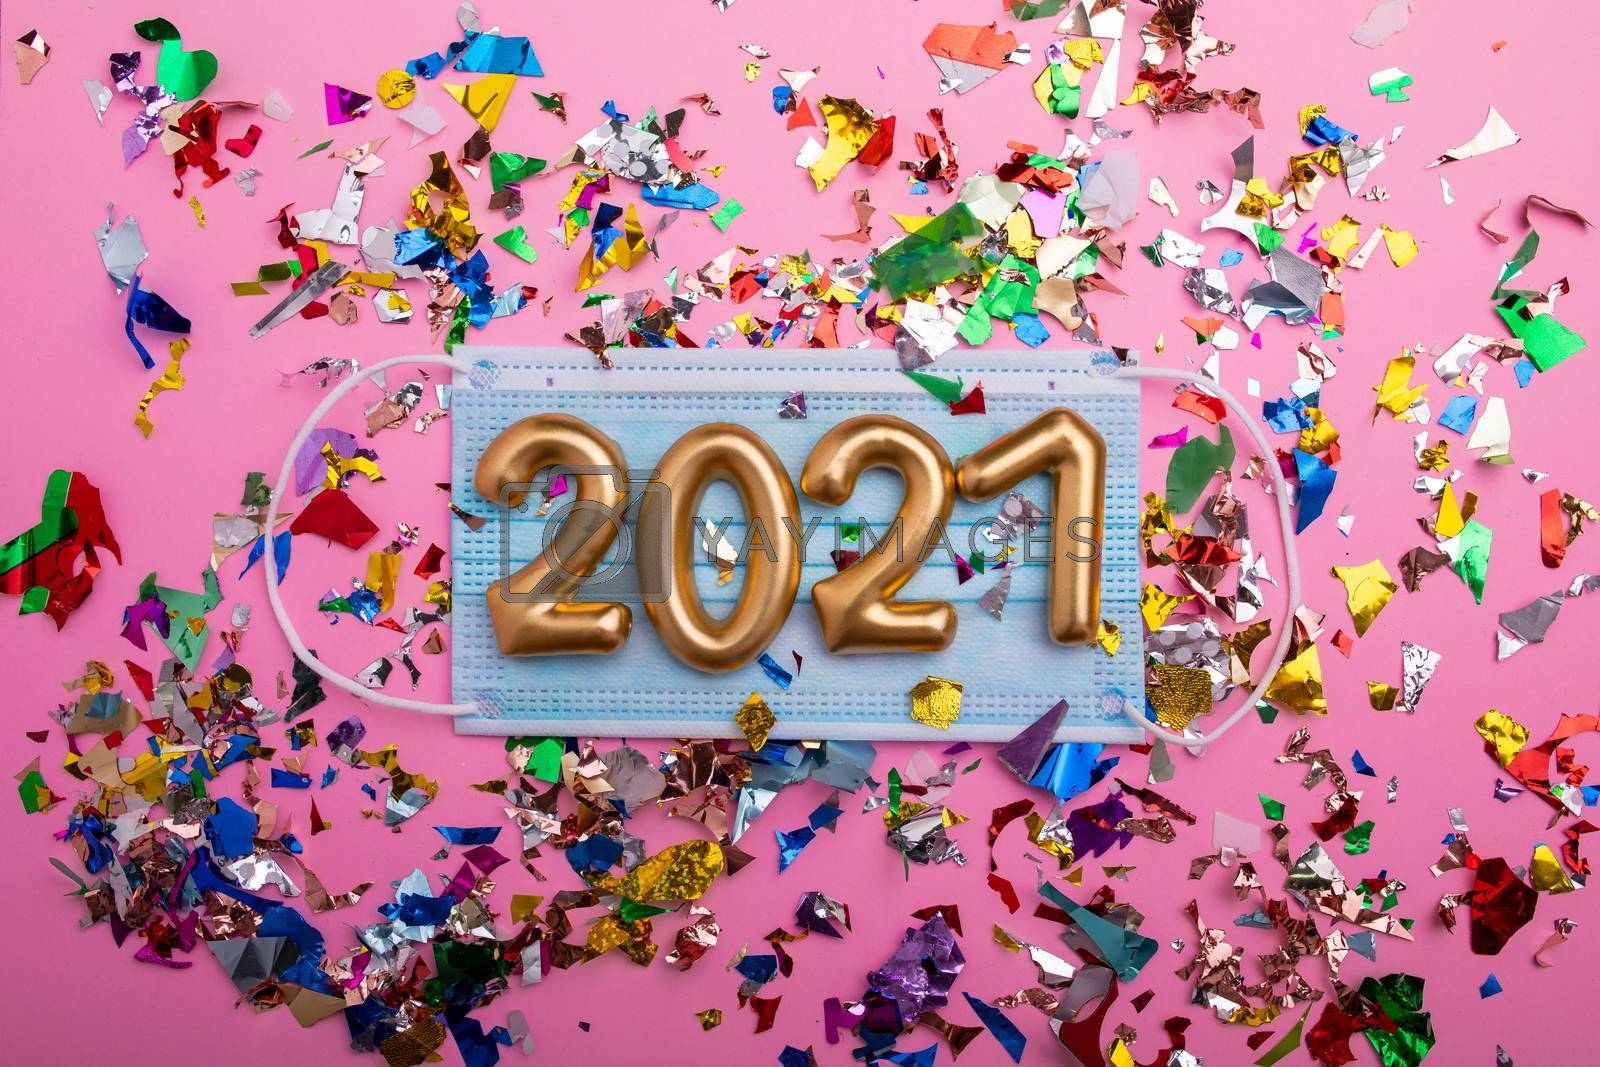 Numbers 2021 with face mask and confetti - Happy new year! by adamr